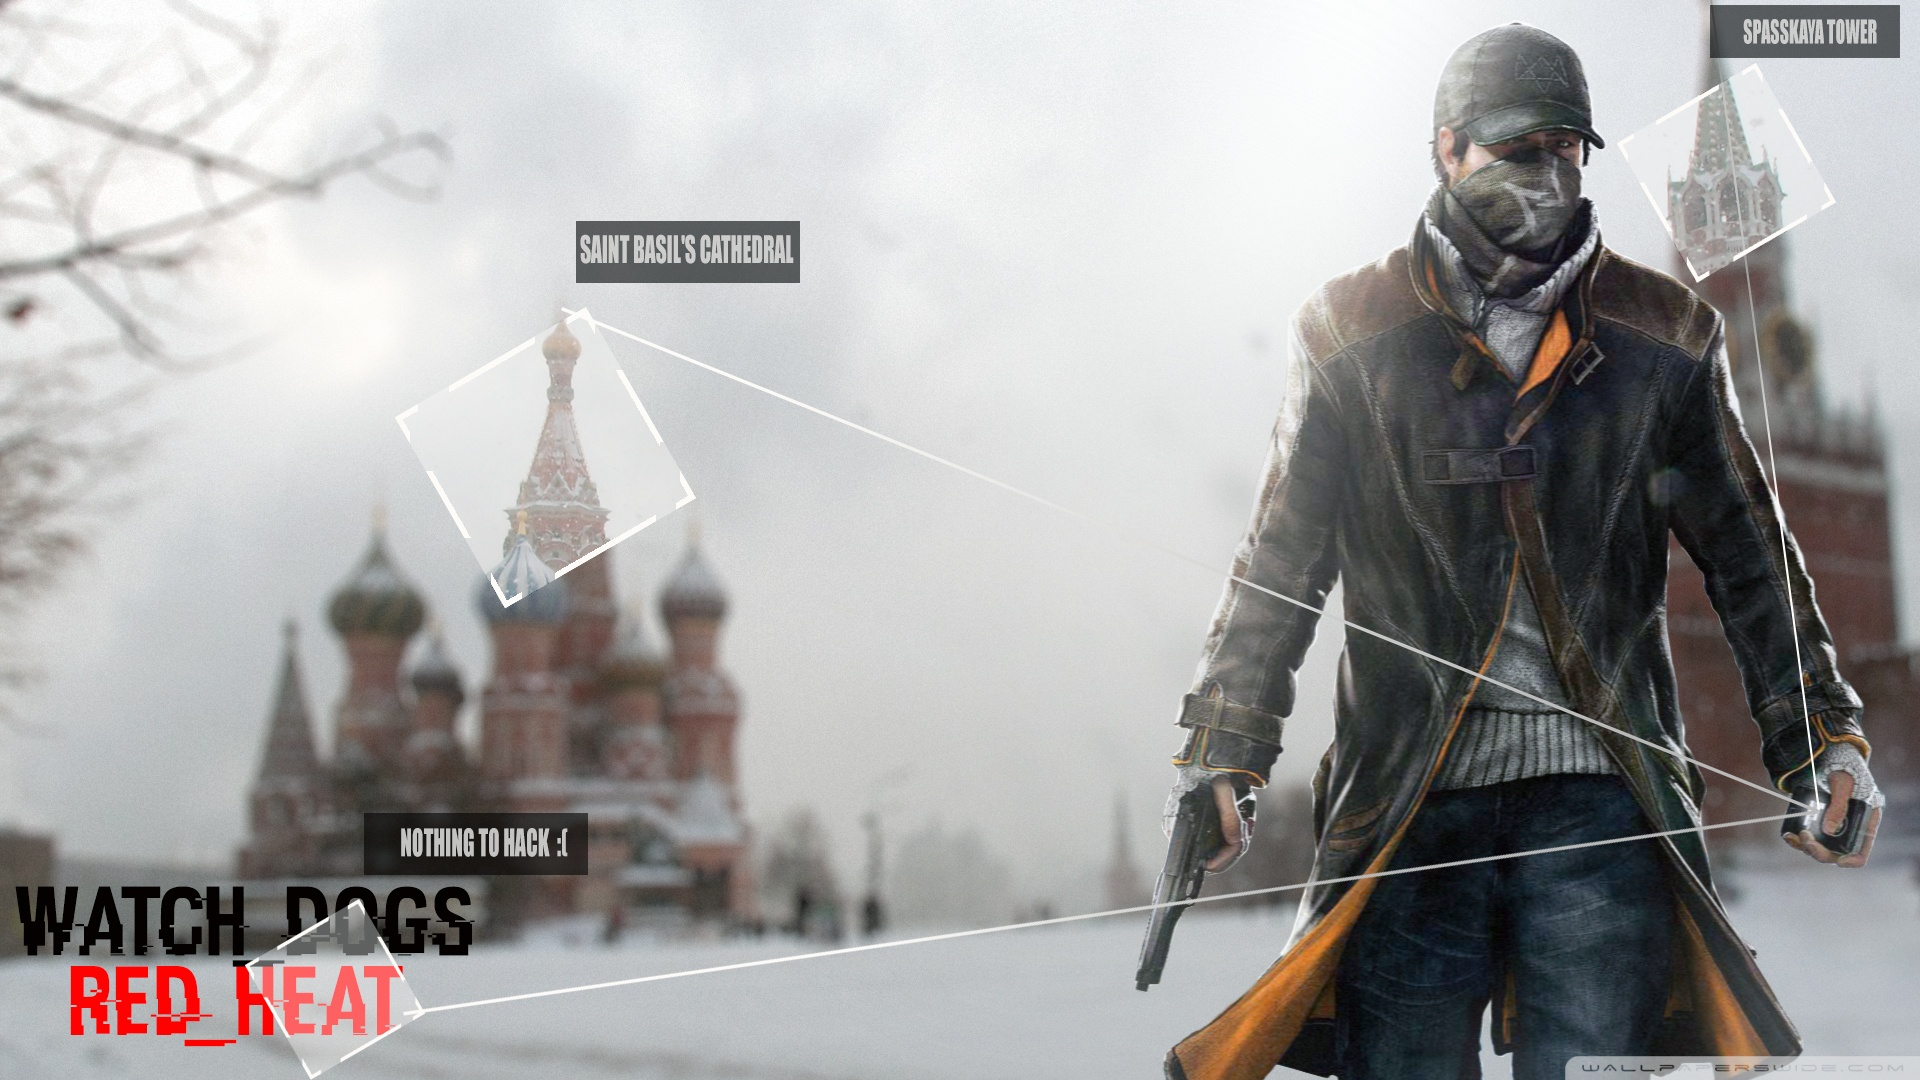 Watch Dogs Wallpaper Hd Posted By Sarah Peltier